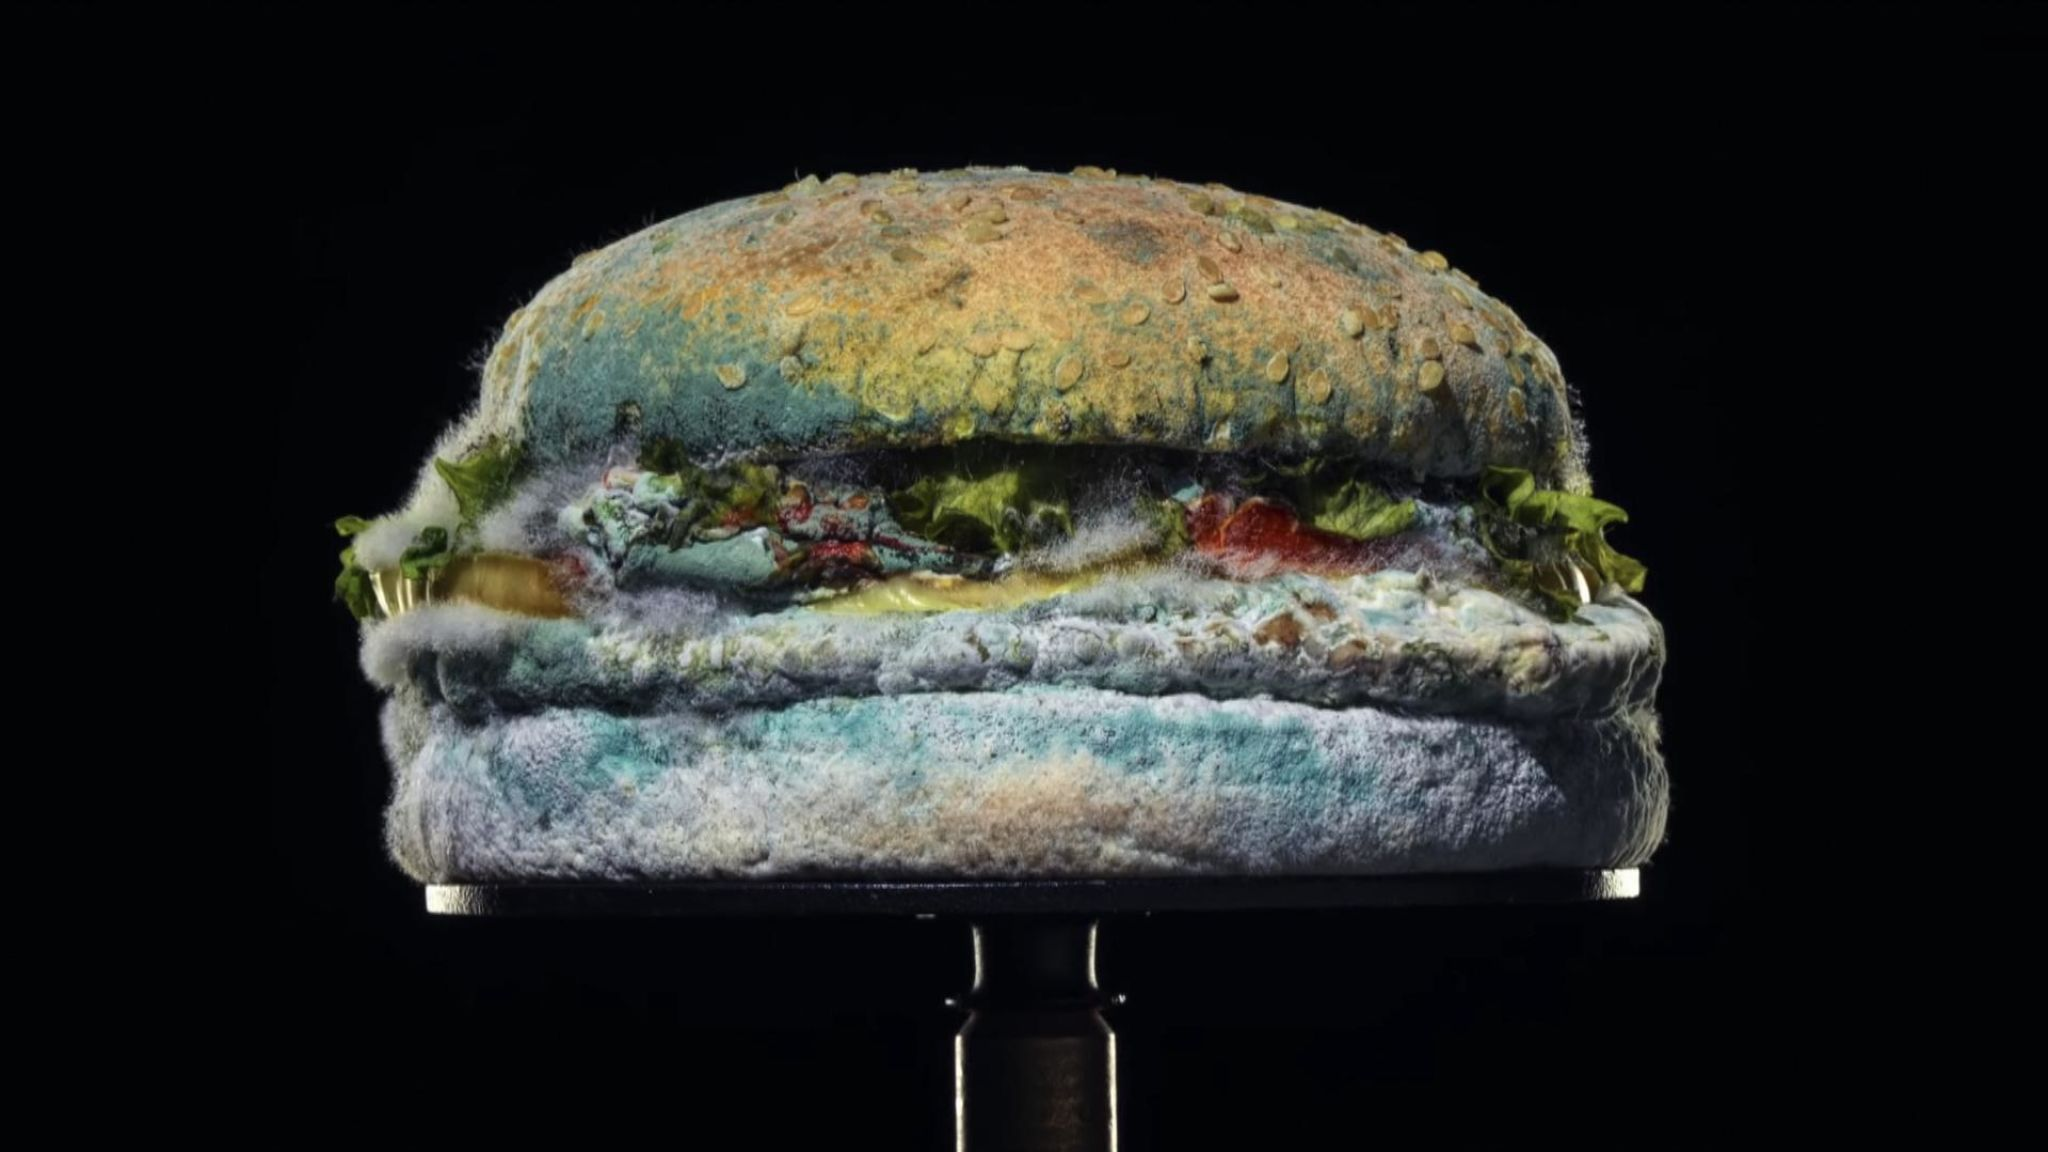 skynews-burger-king-mouldy_4924999